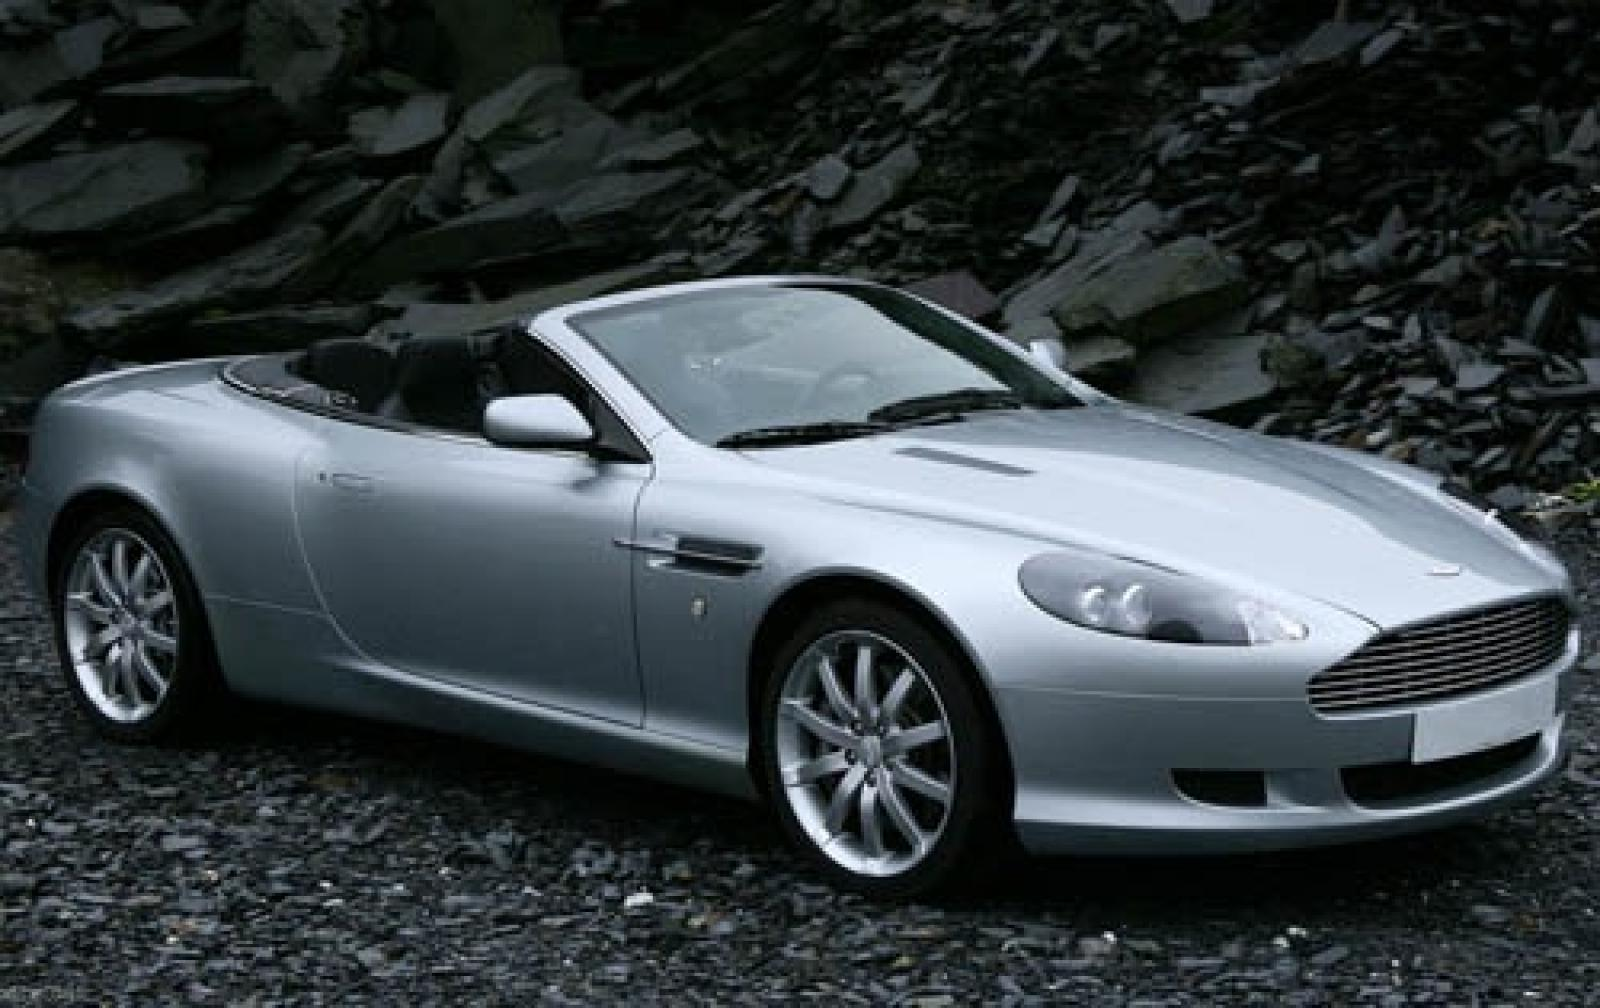 2007 aston martin db9 information and photos zombiedrive. Black Bedroom Furniture Sets. Home Design Ideas